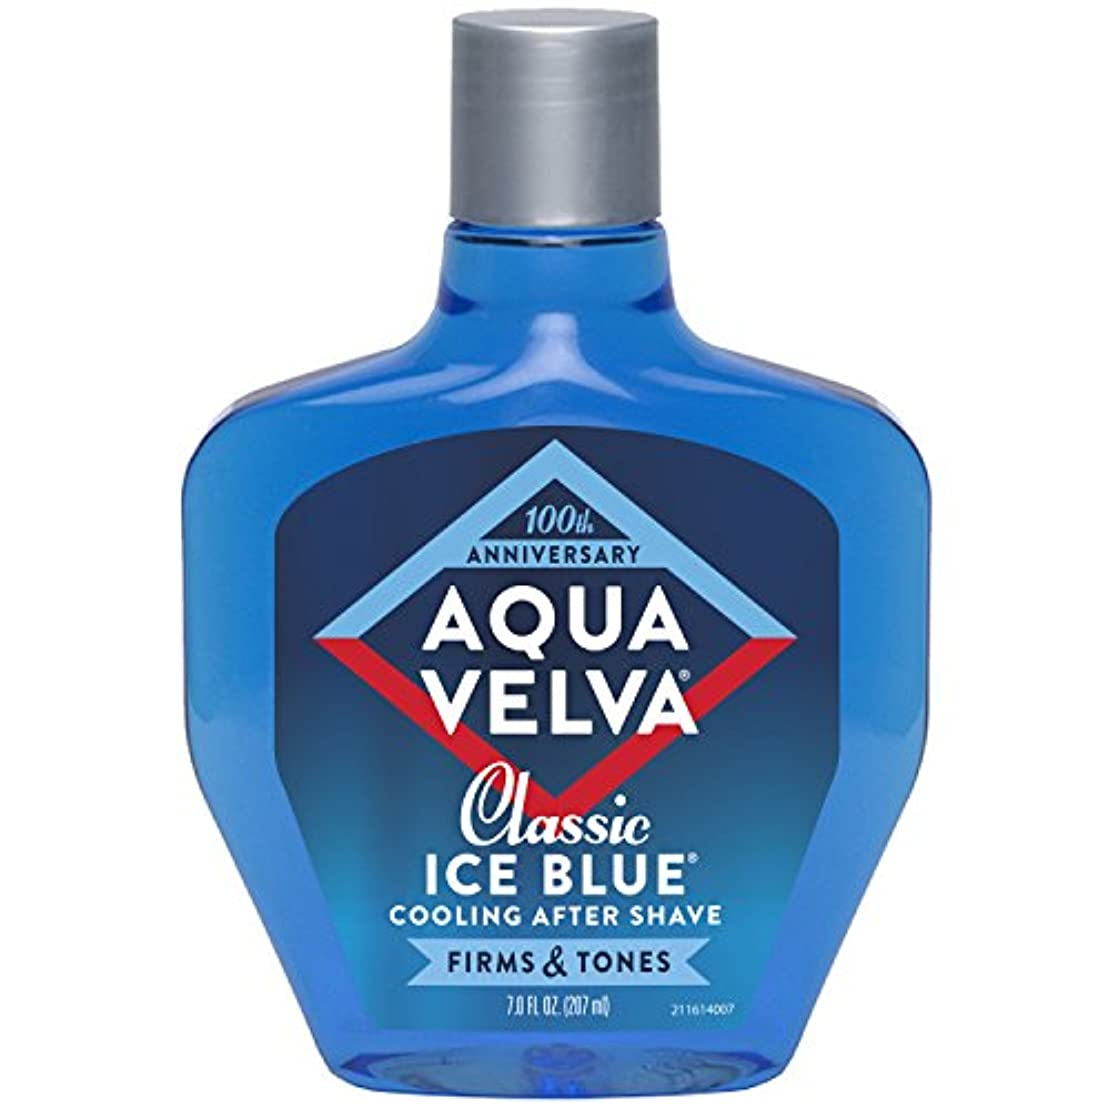 Aqua Velva Cooling After Shave Classic Ice Blue 198g (並行輸入品)